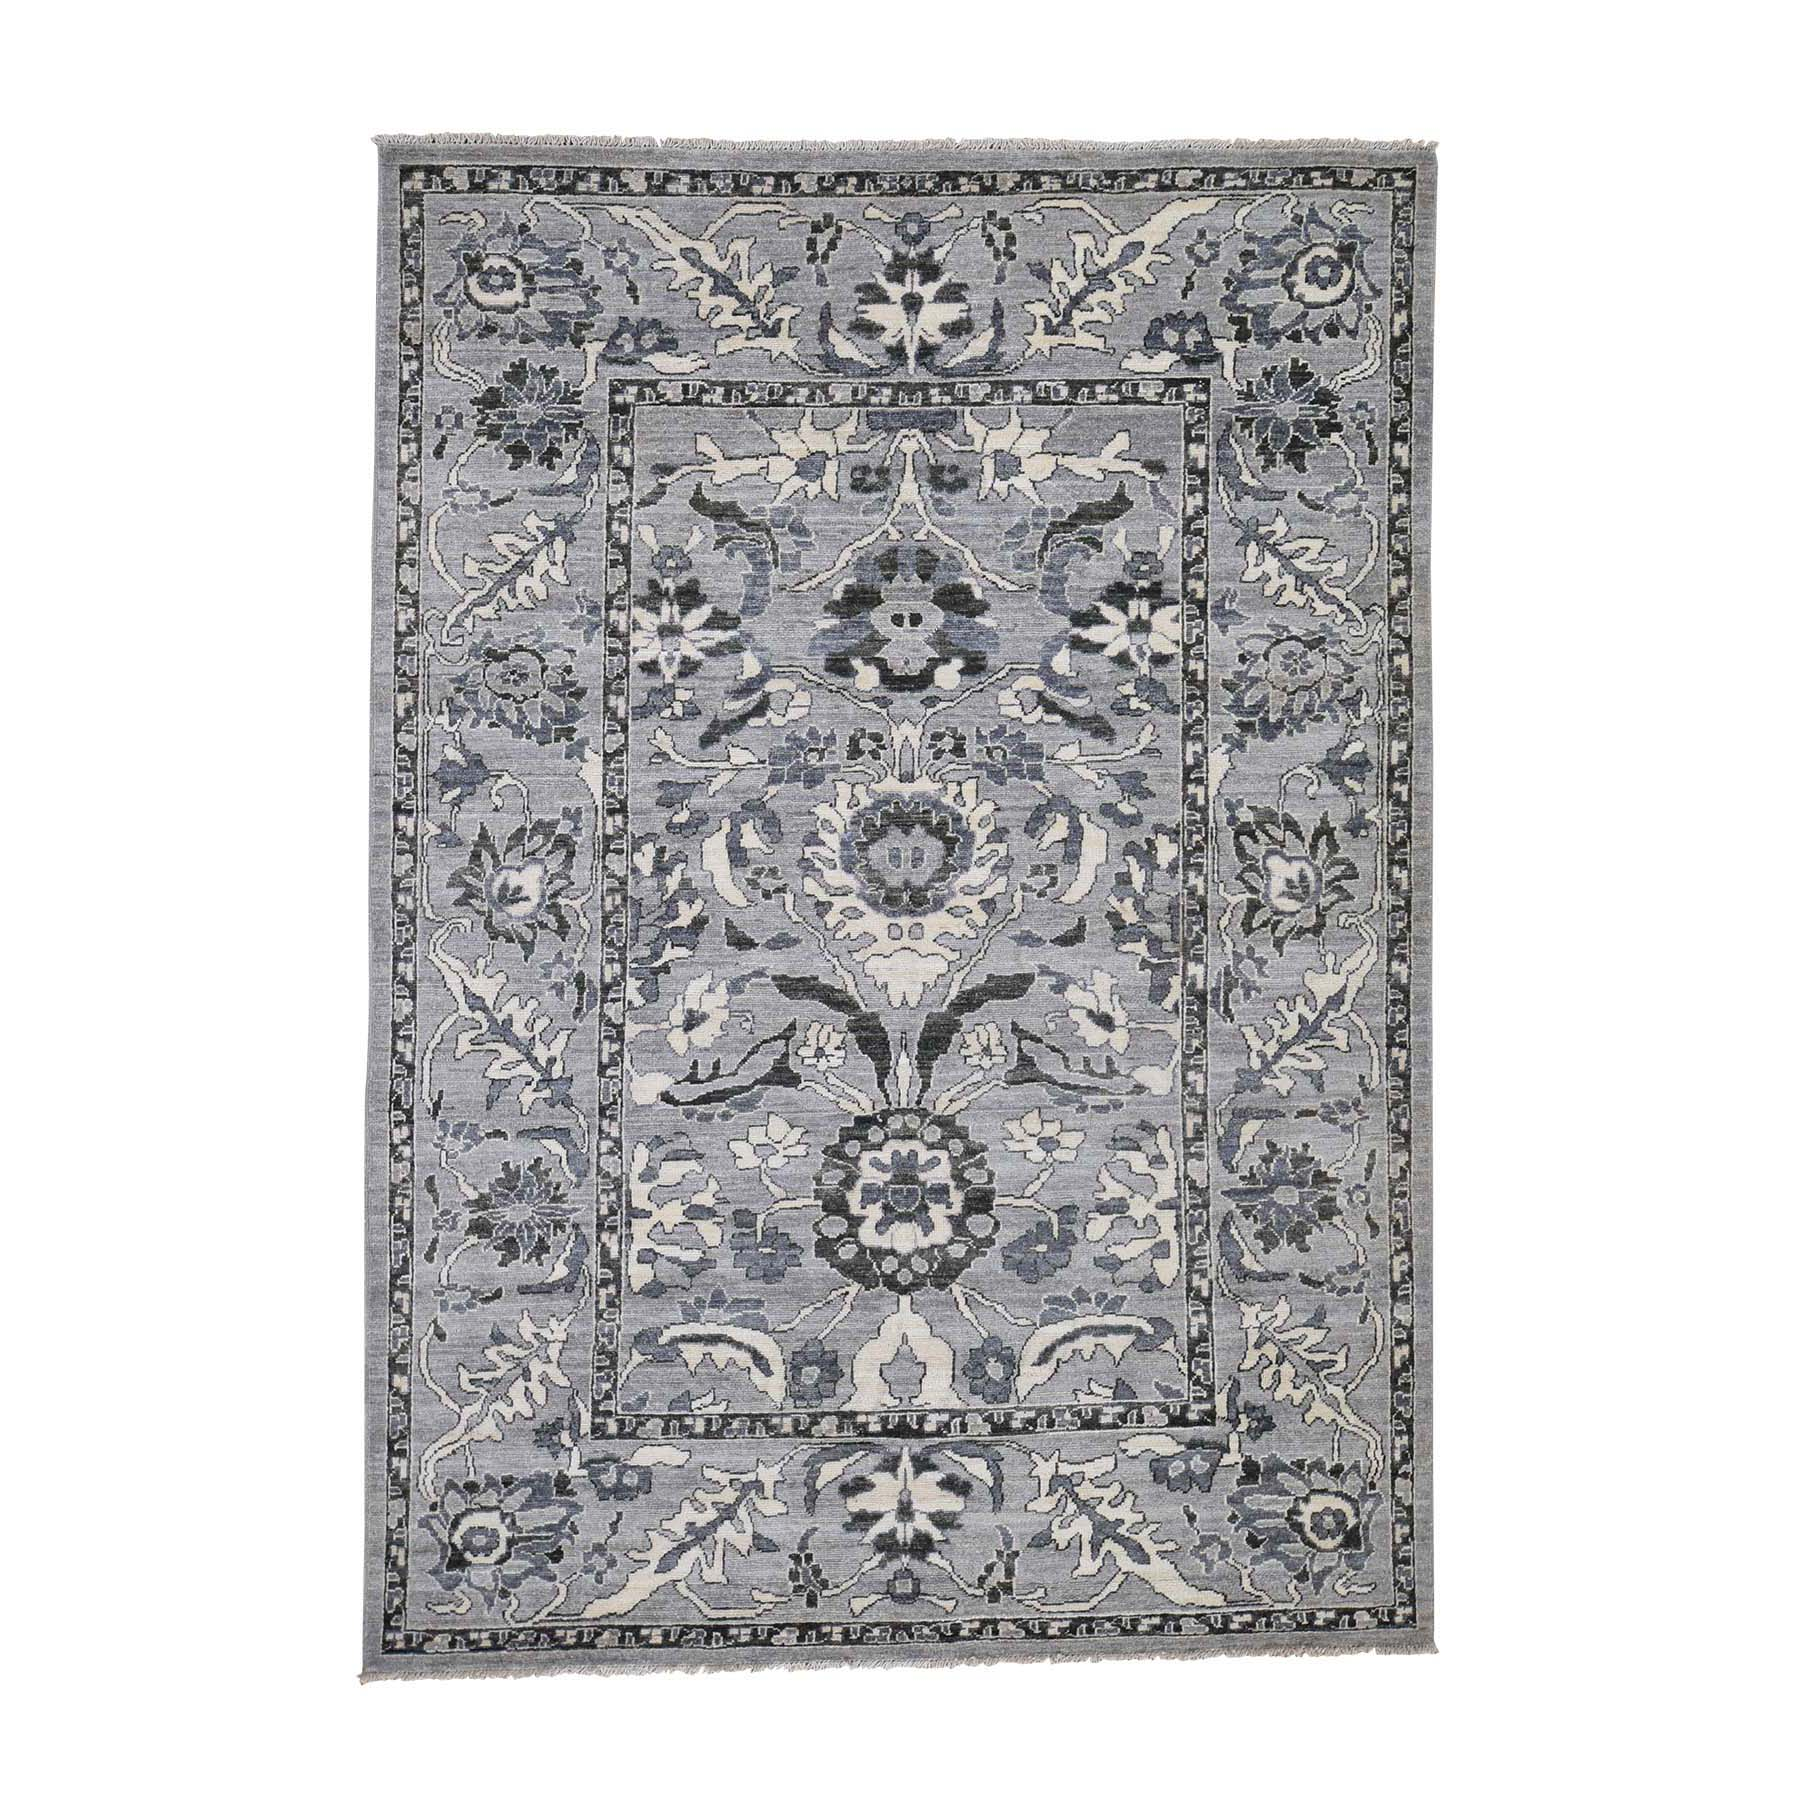 """5'5""""x7'7"""" Mahal Design Undyed Natural Wool Hand-Knotted Oriental Rug 43575"""